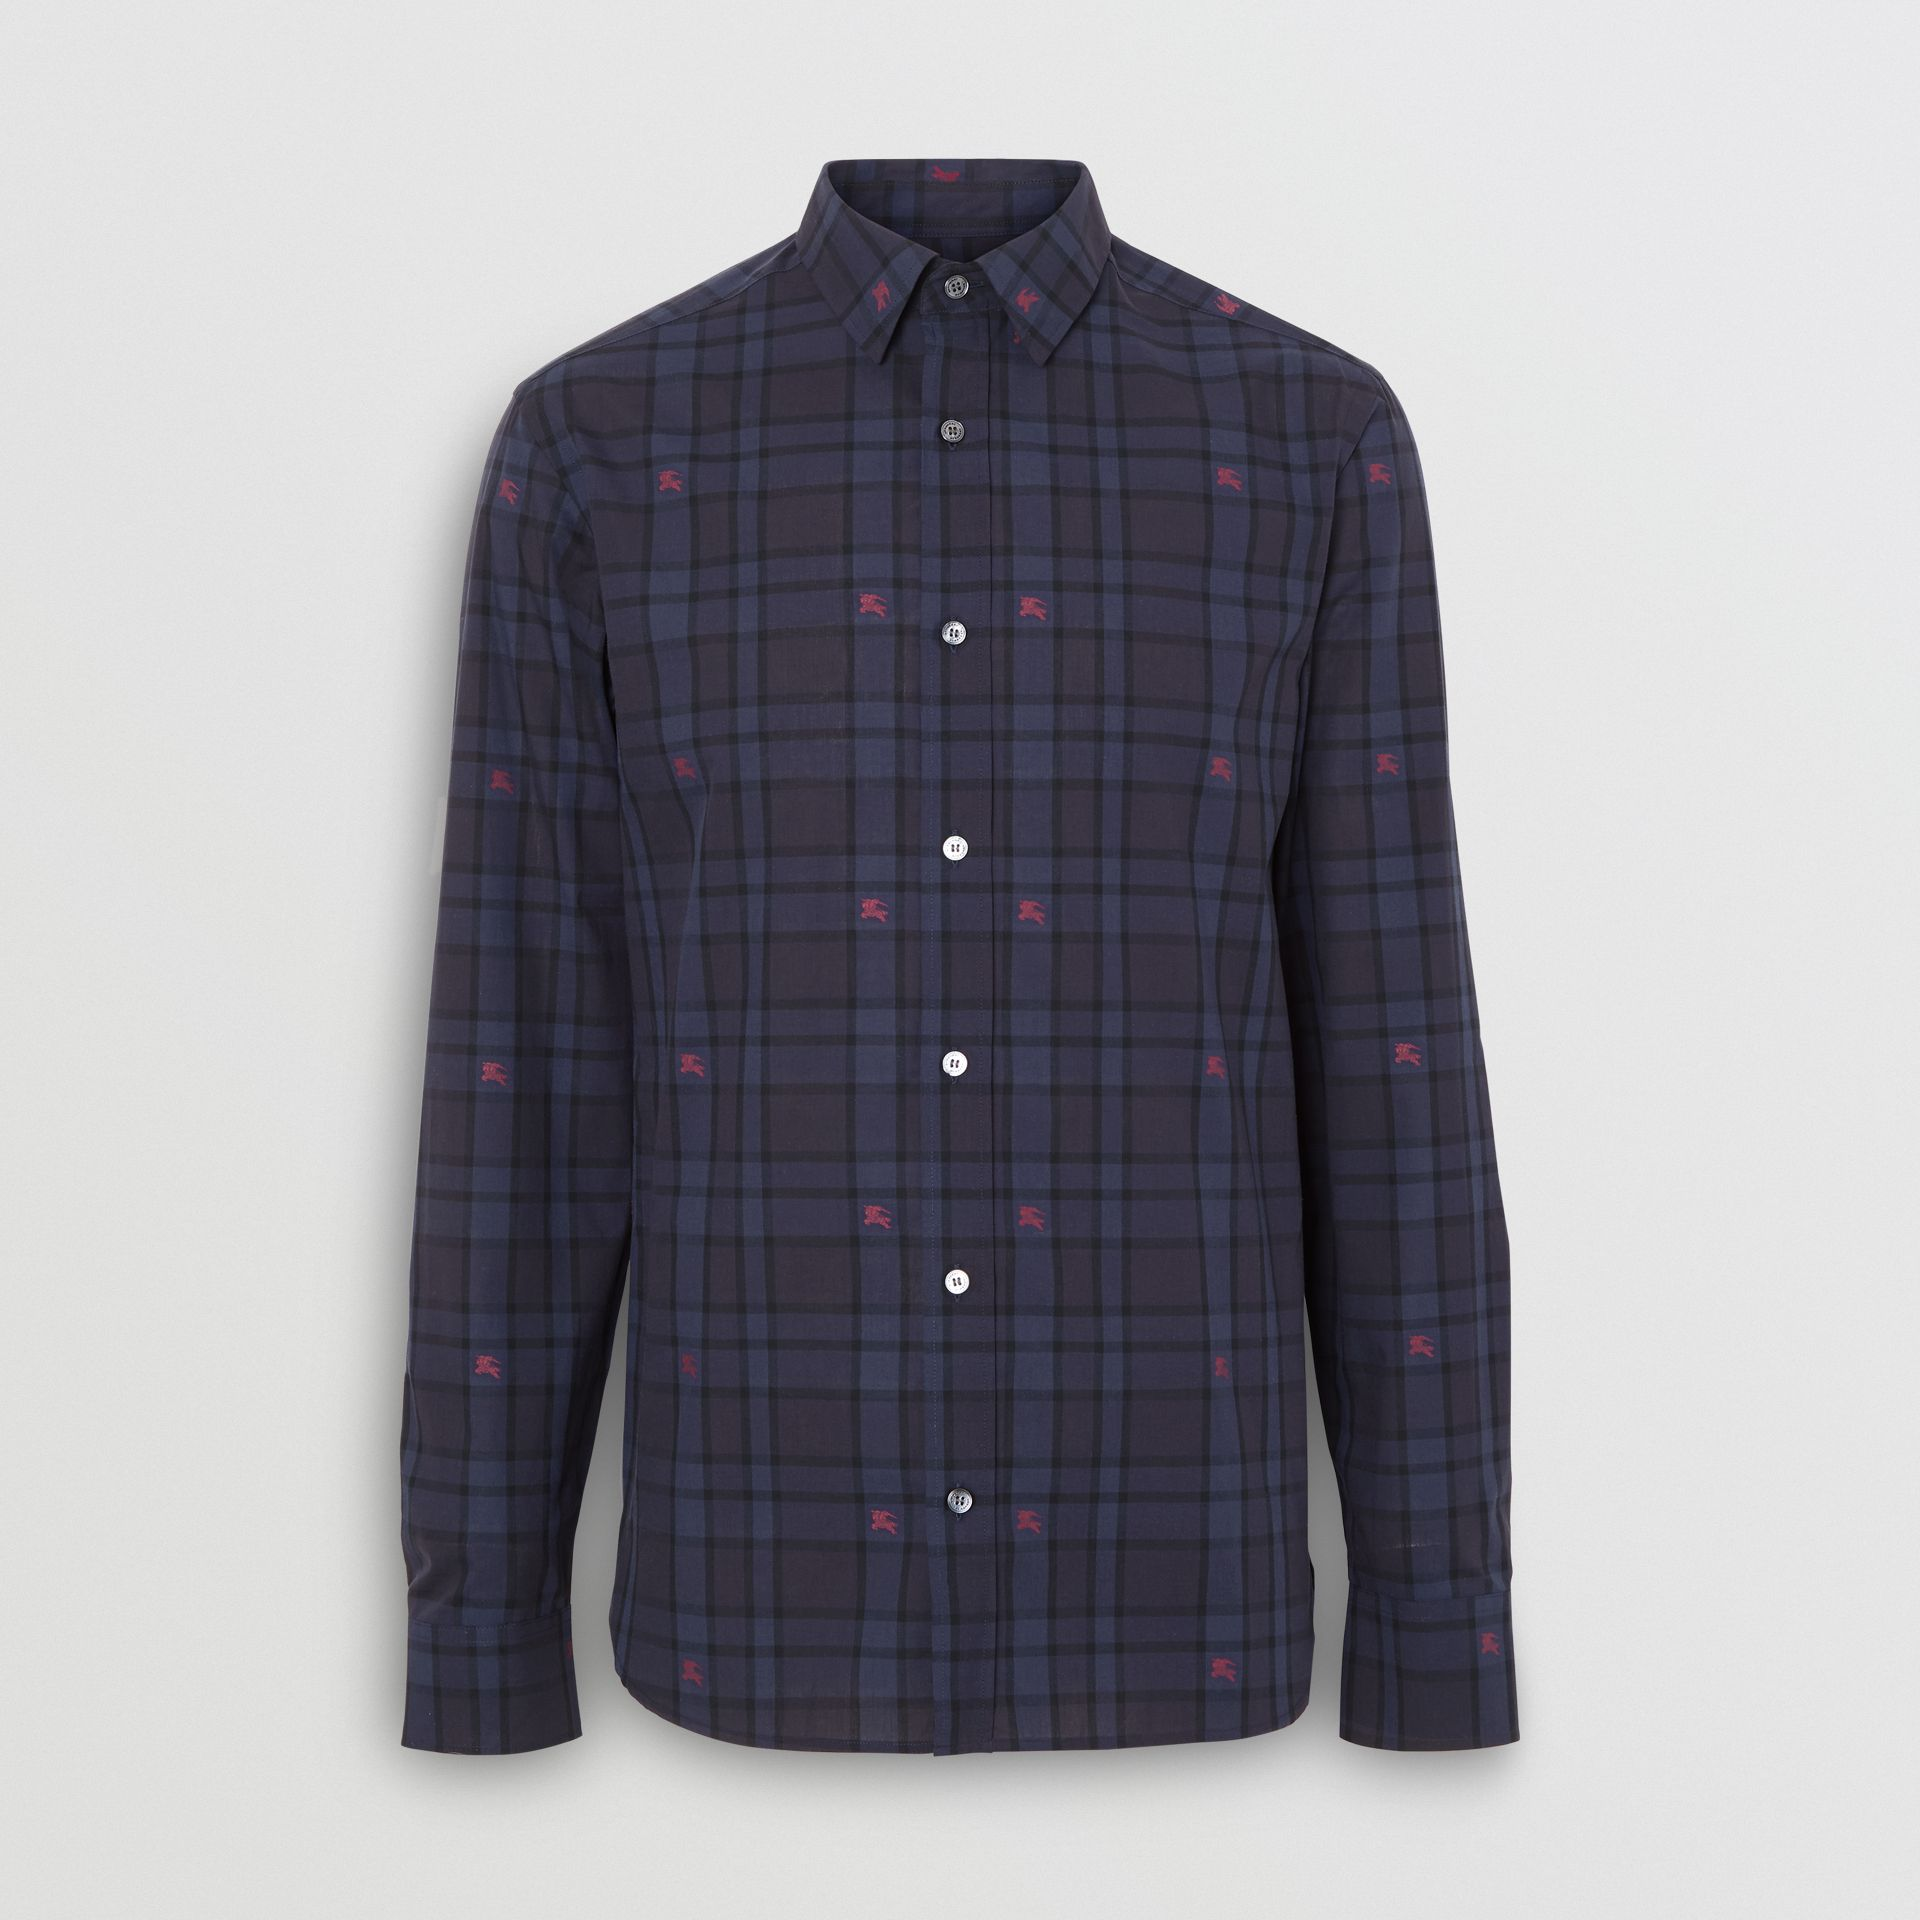 Equestrian Knight Check Cotton Shirt in Dark Indigo - Men | Burberry - gallery image 3